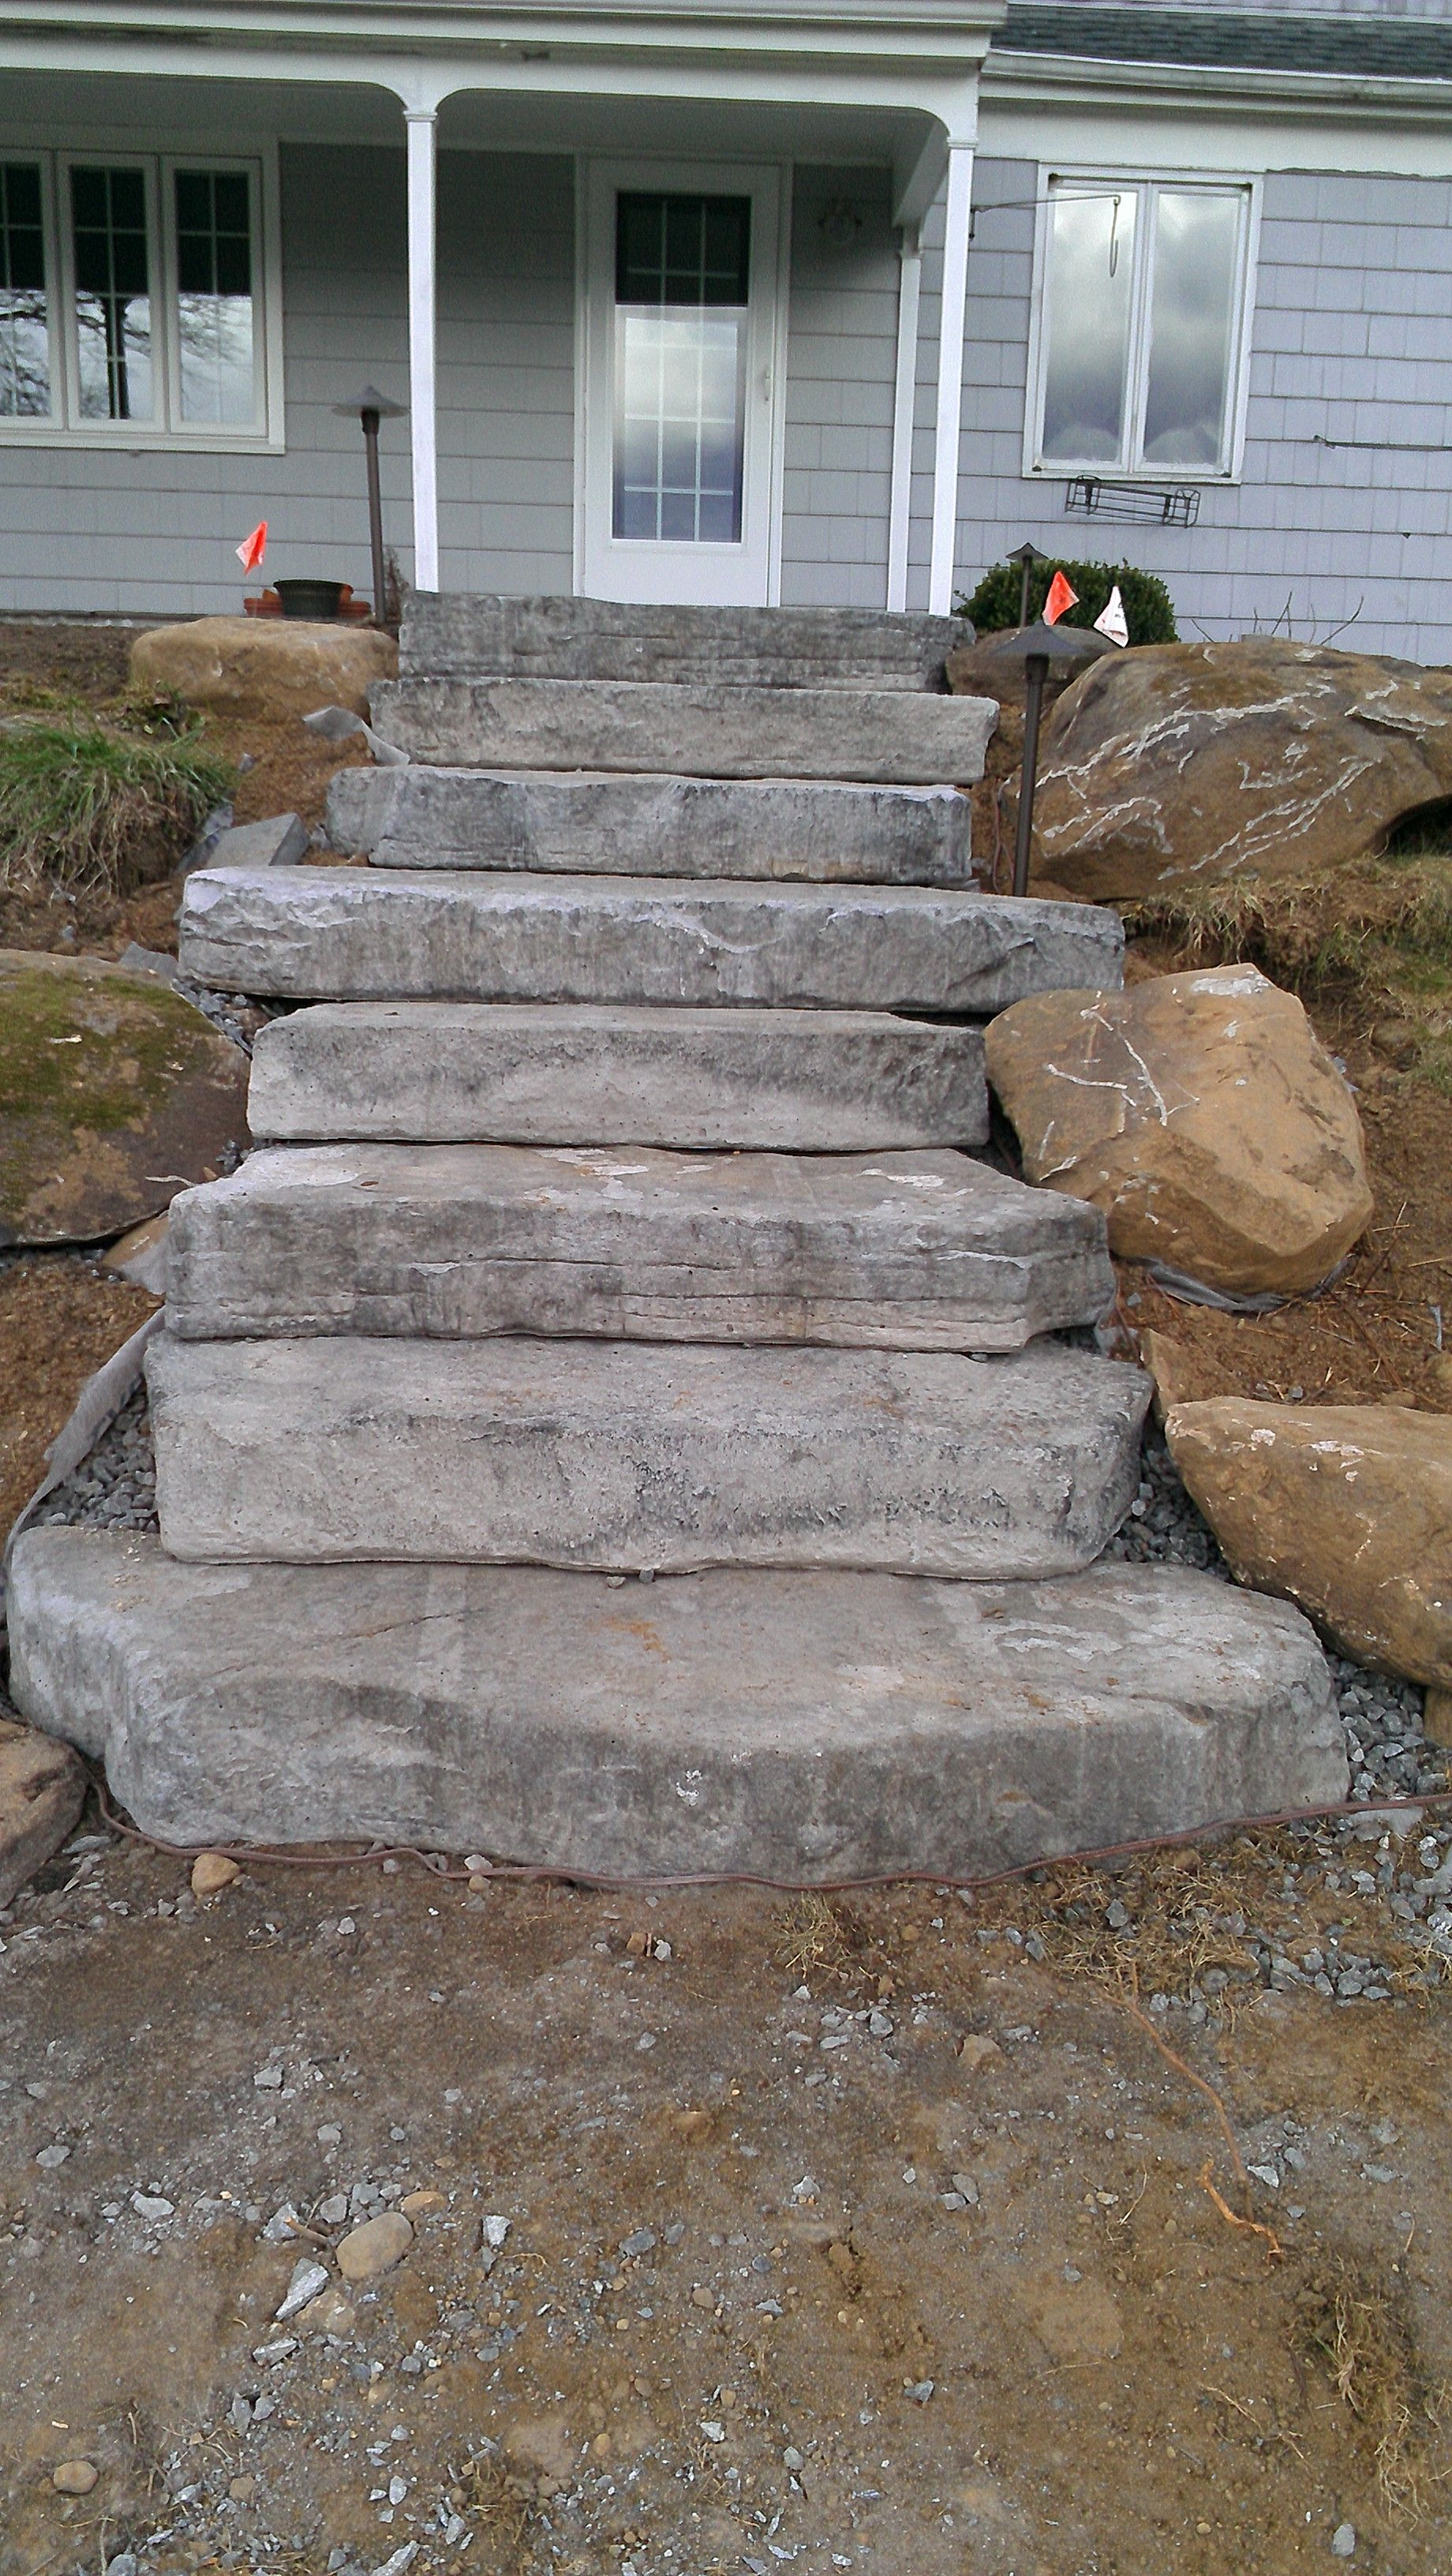 Concrete Steps Made To Look Natural Steps Pinterest Concrete Steps Concrete And Natural